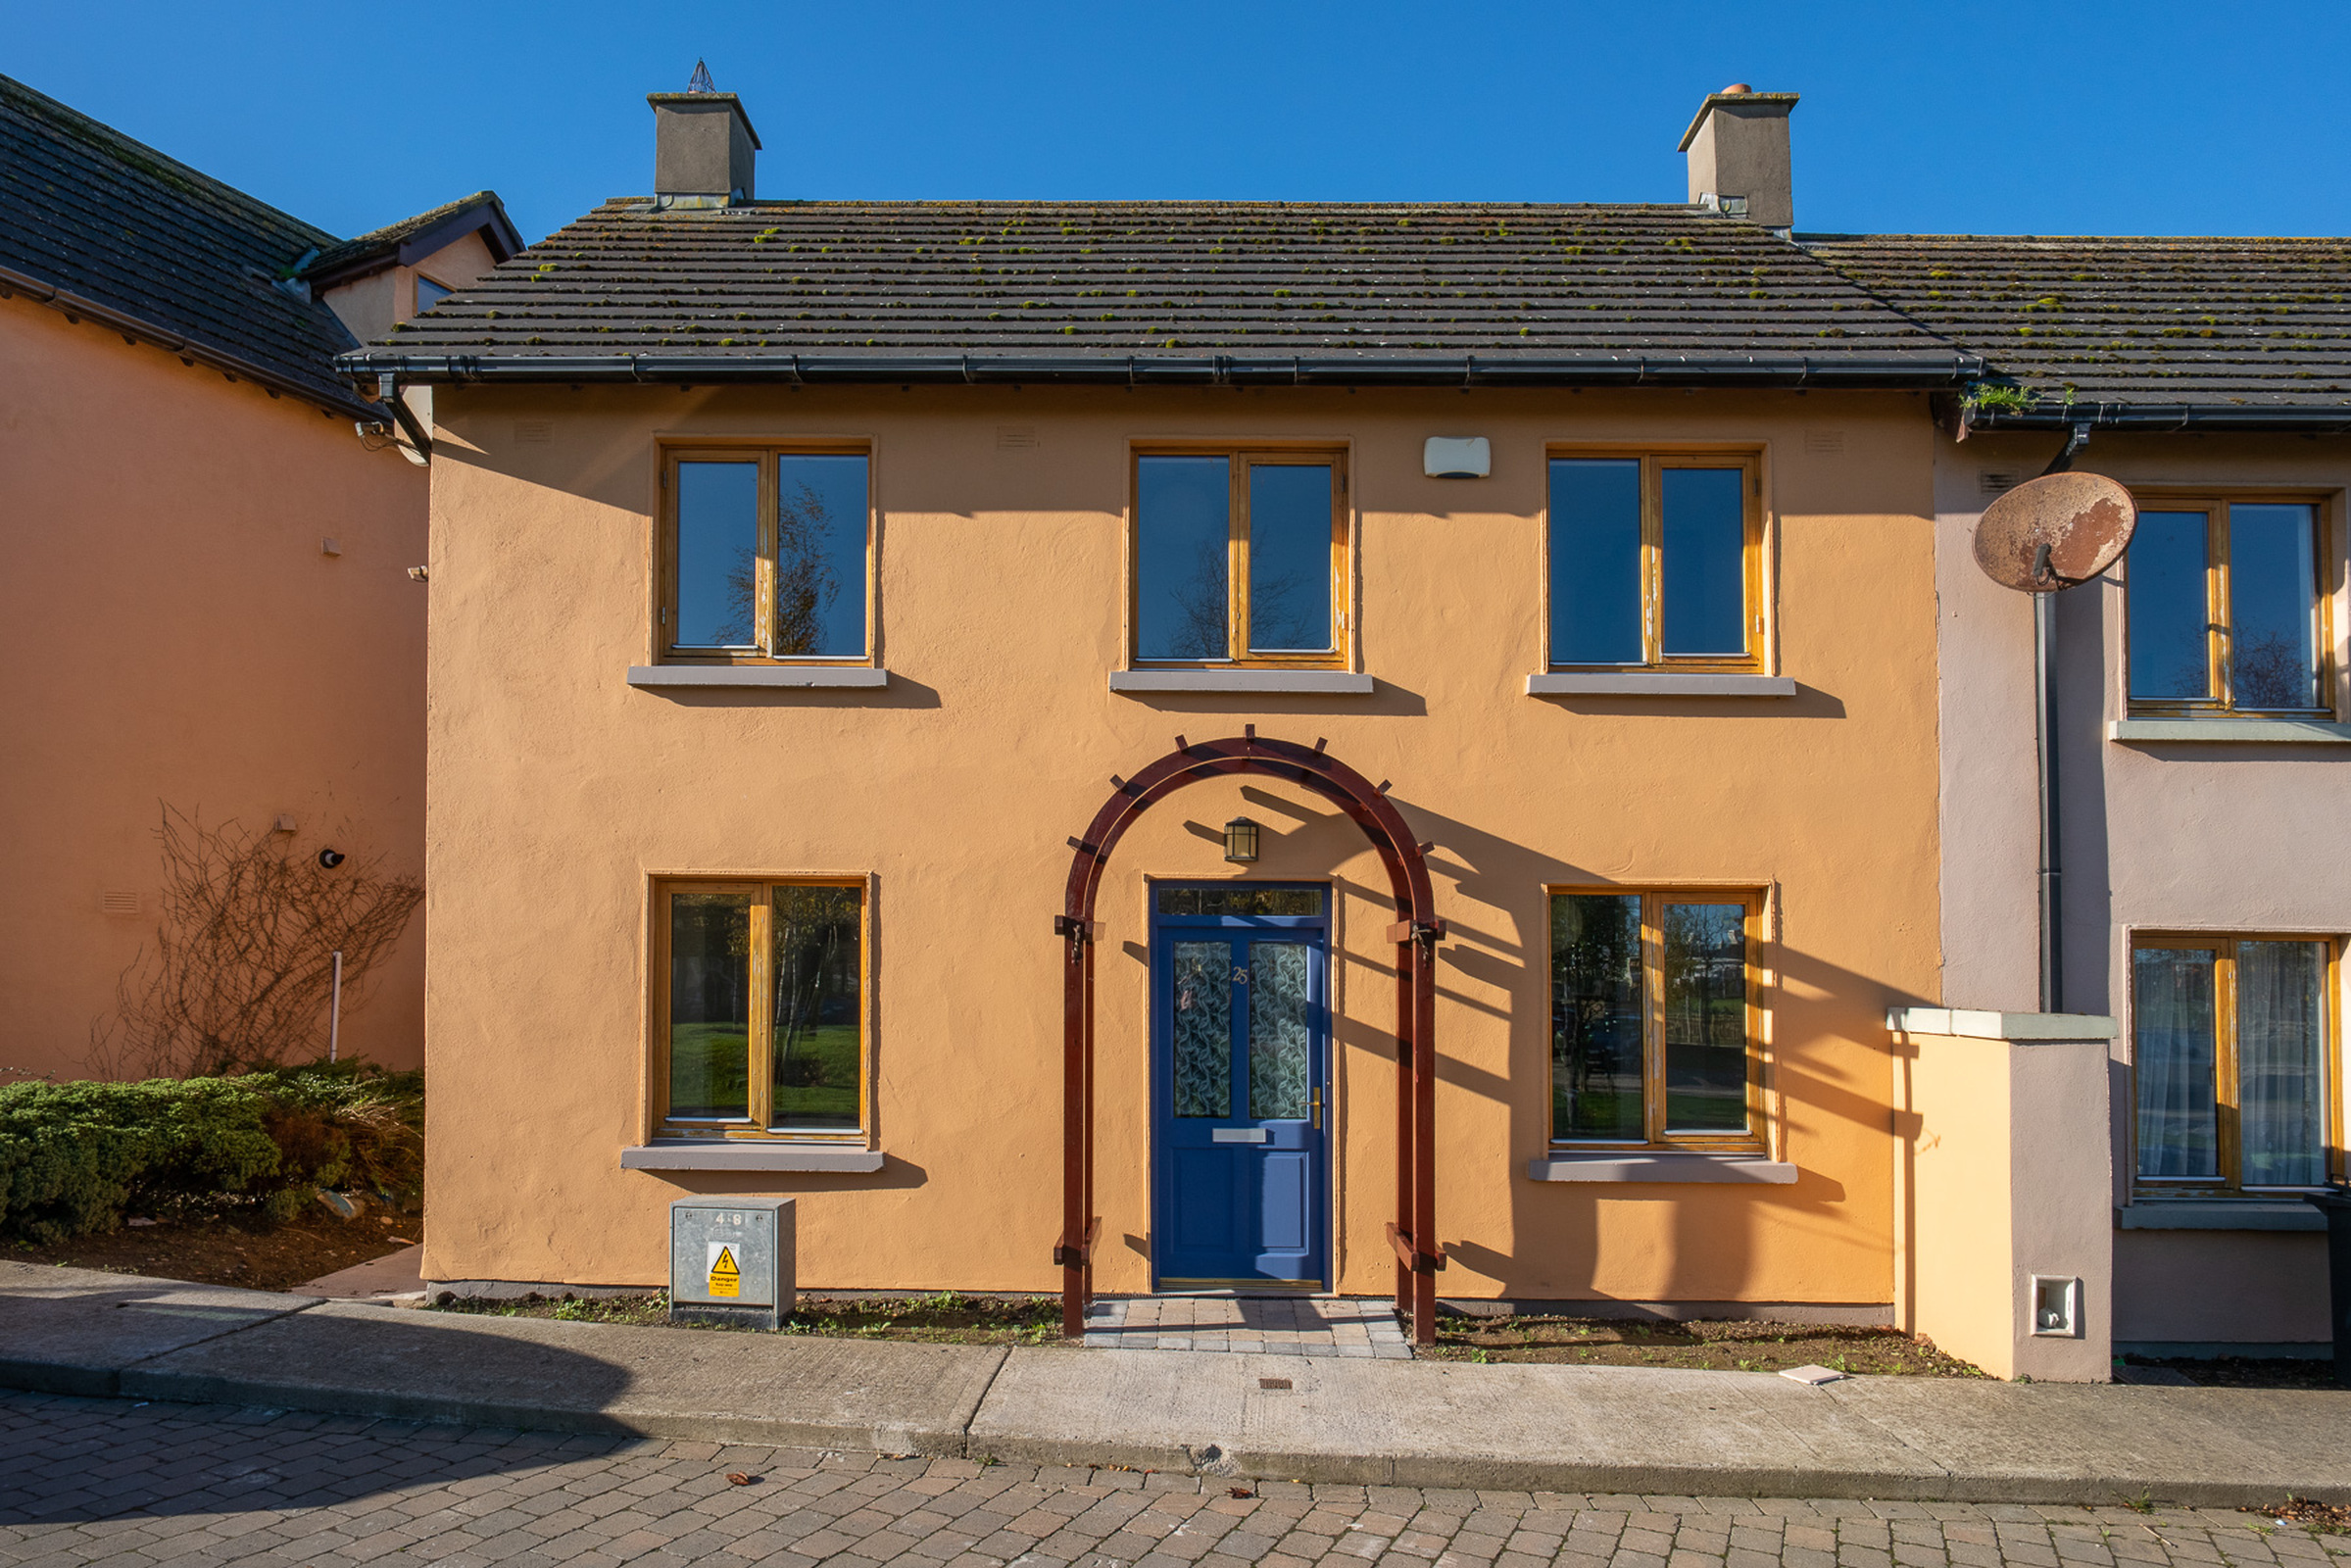 25 Coleman Crescent, Lusk Village, Lusk, Co. Dublin